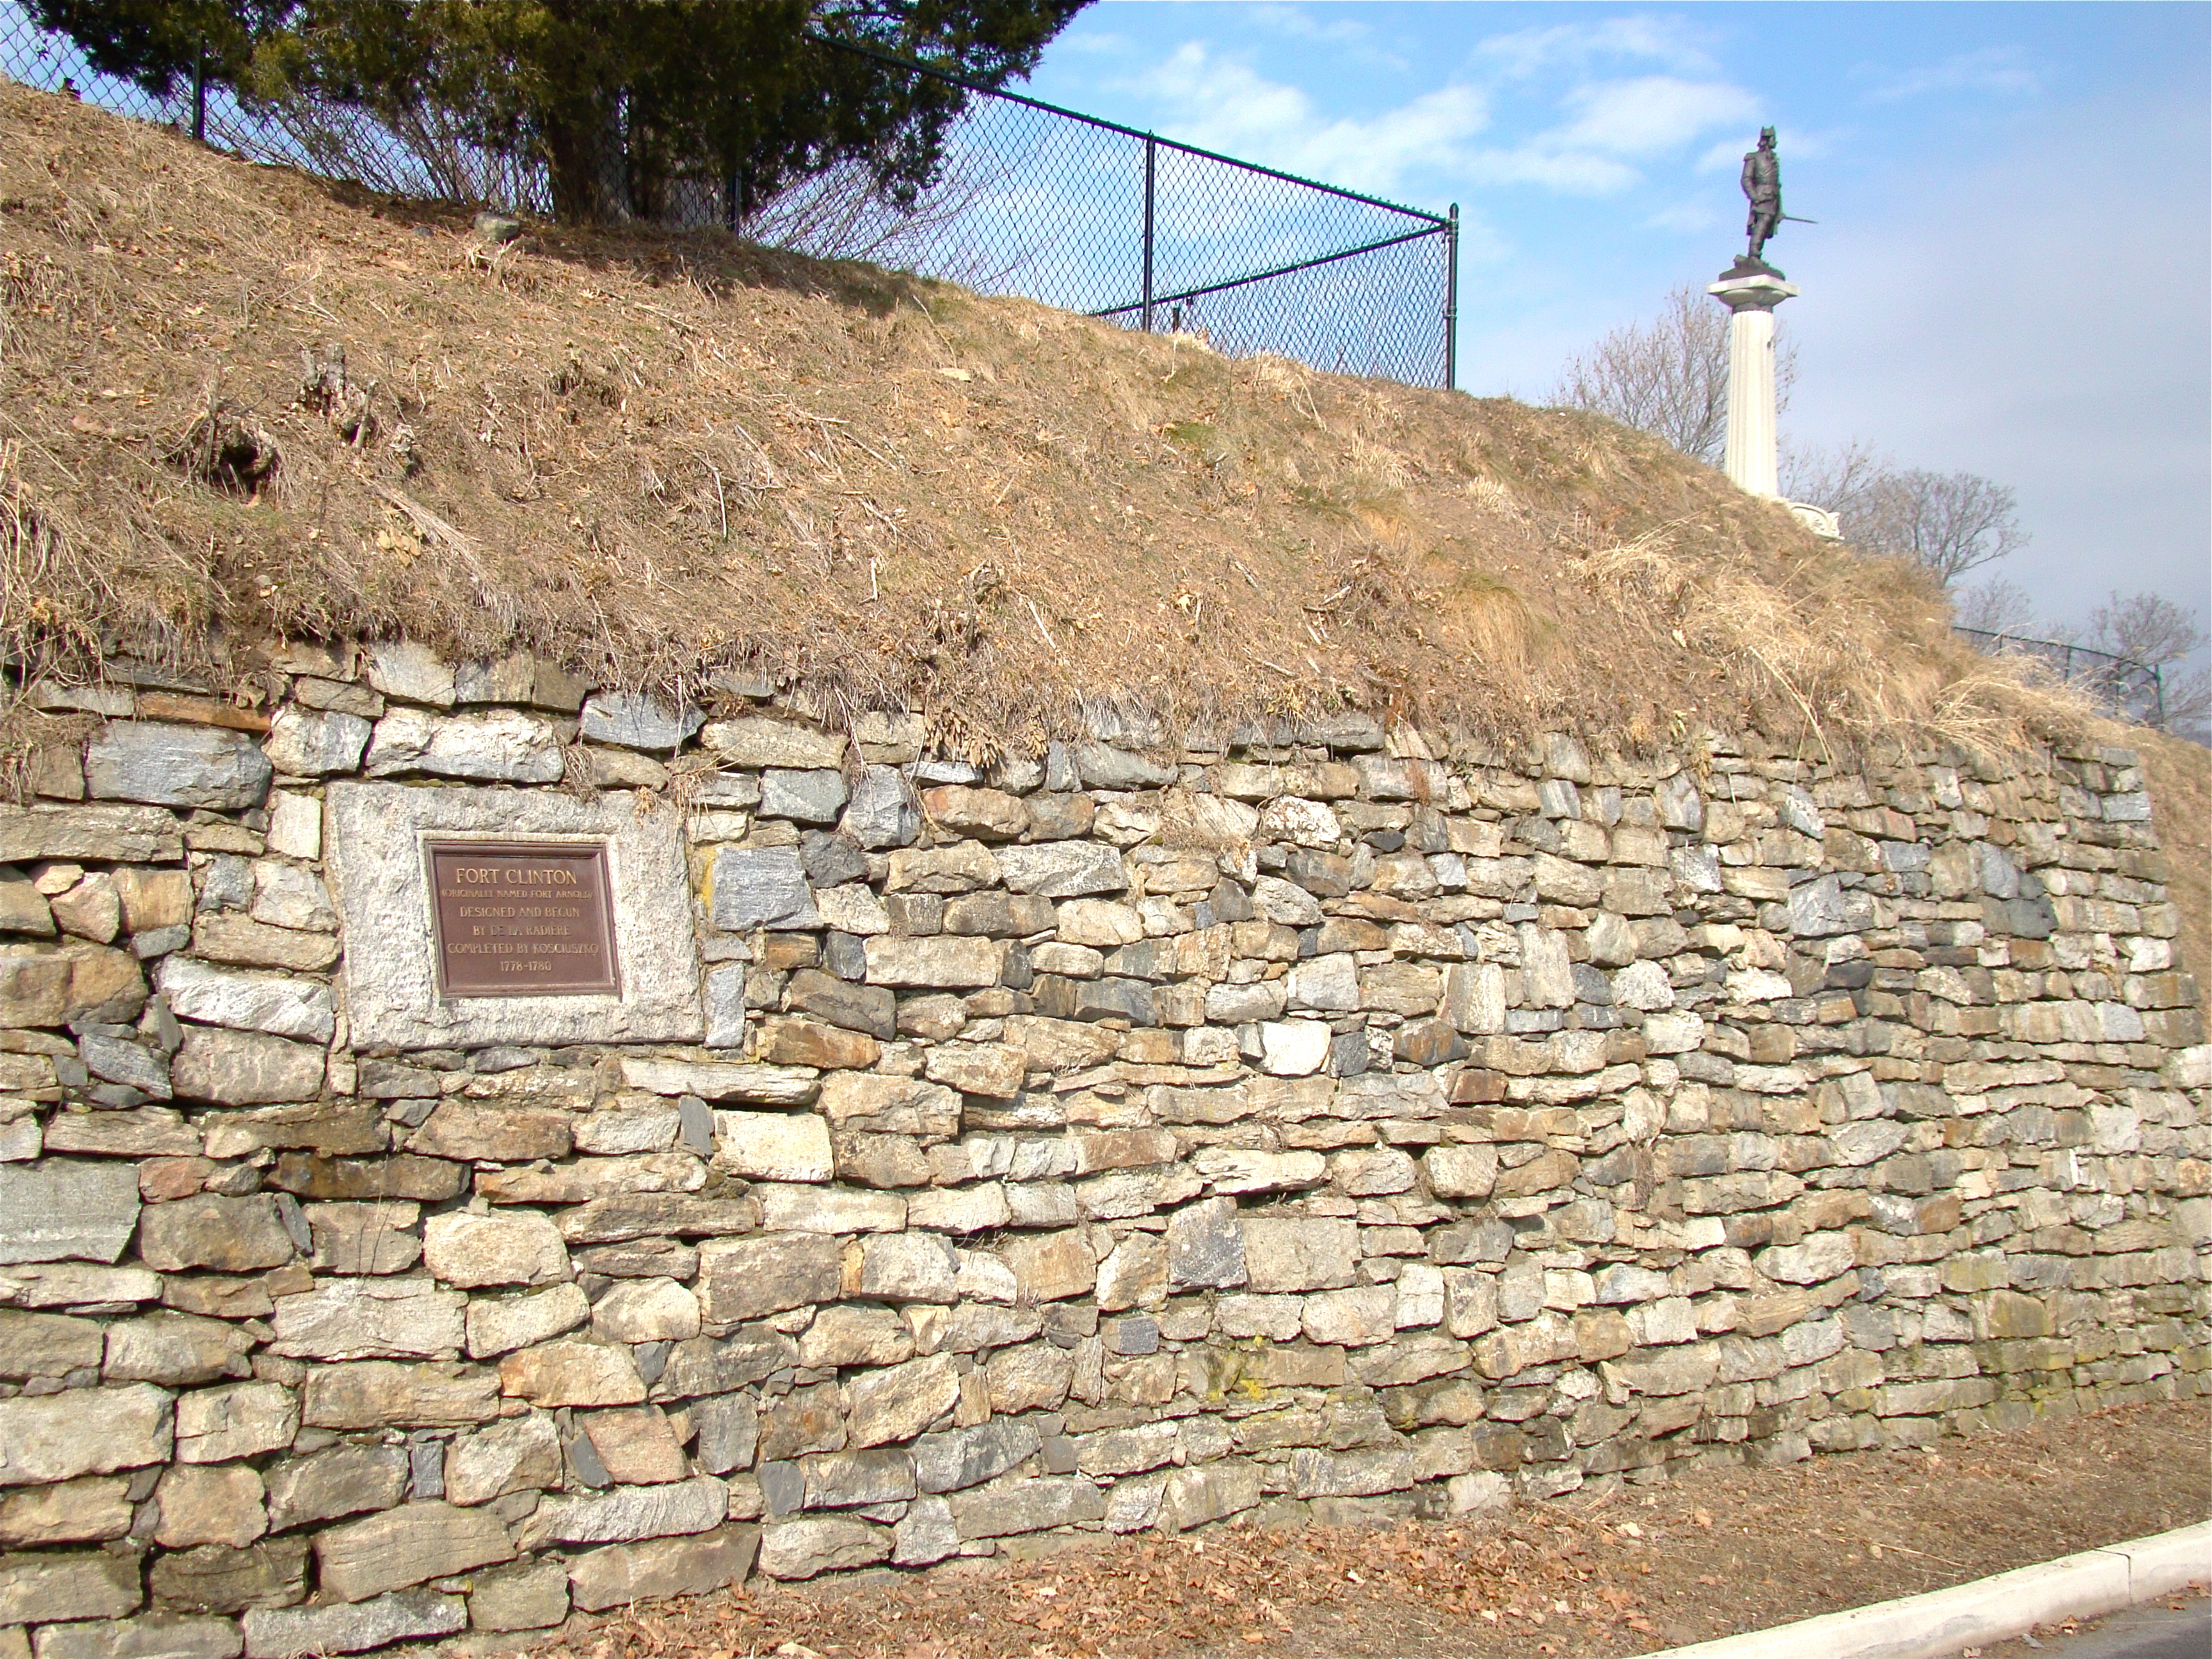 Remains of Ft. Clinton, NY - Revolutionary War defensive work at West Point, NY, fortified by Kościuszko. In background: his statue.